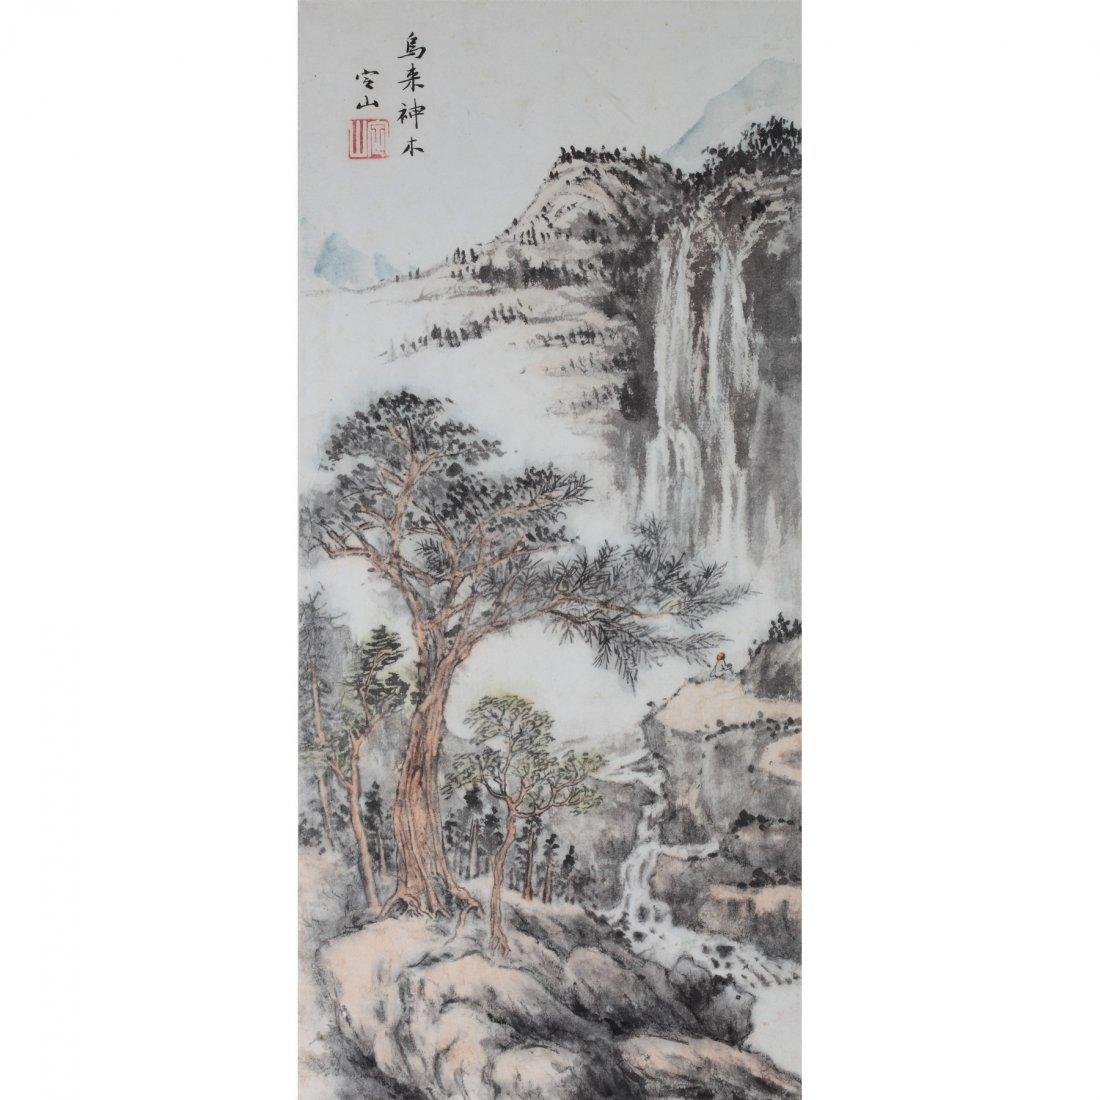 THE SACRED TREE IN WULAI BY CHENG DINGSHAN (1897-1987)